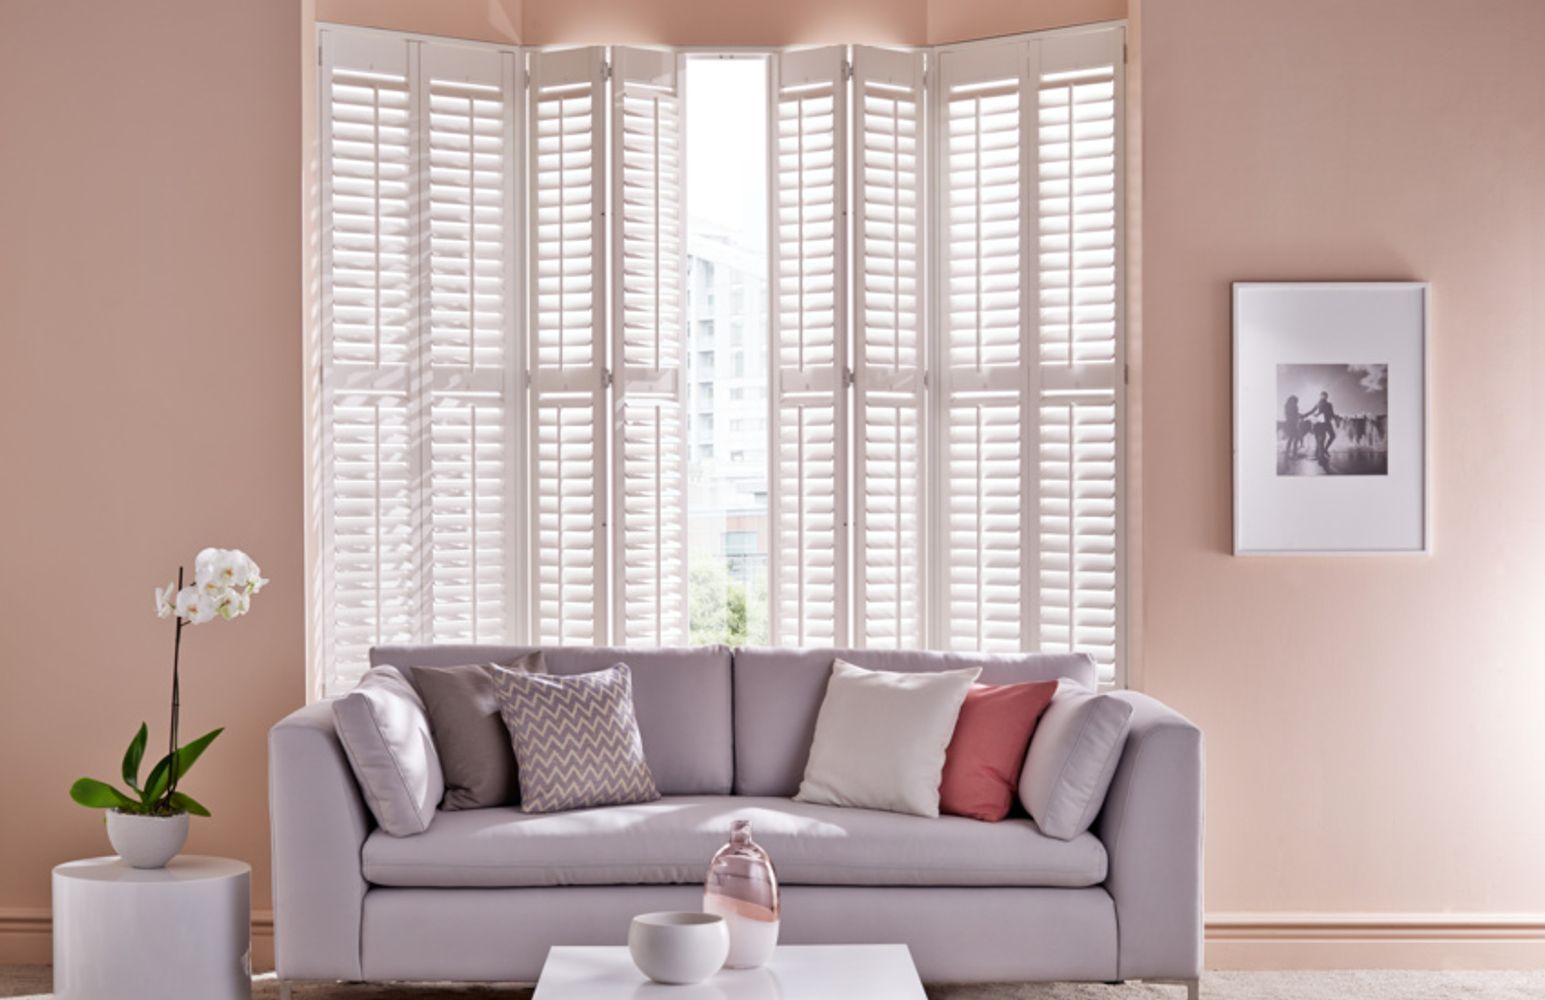 white-bay-window-shutters-in-the-living-room